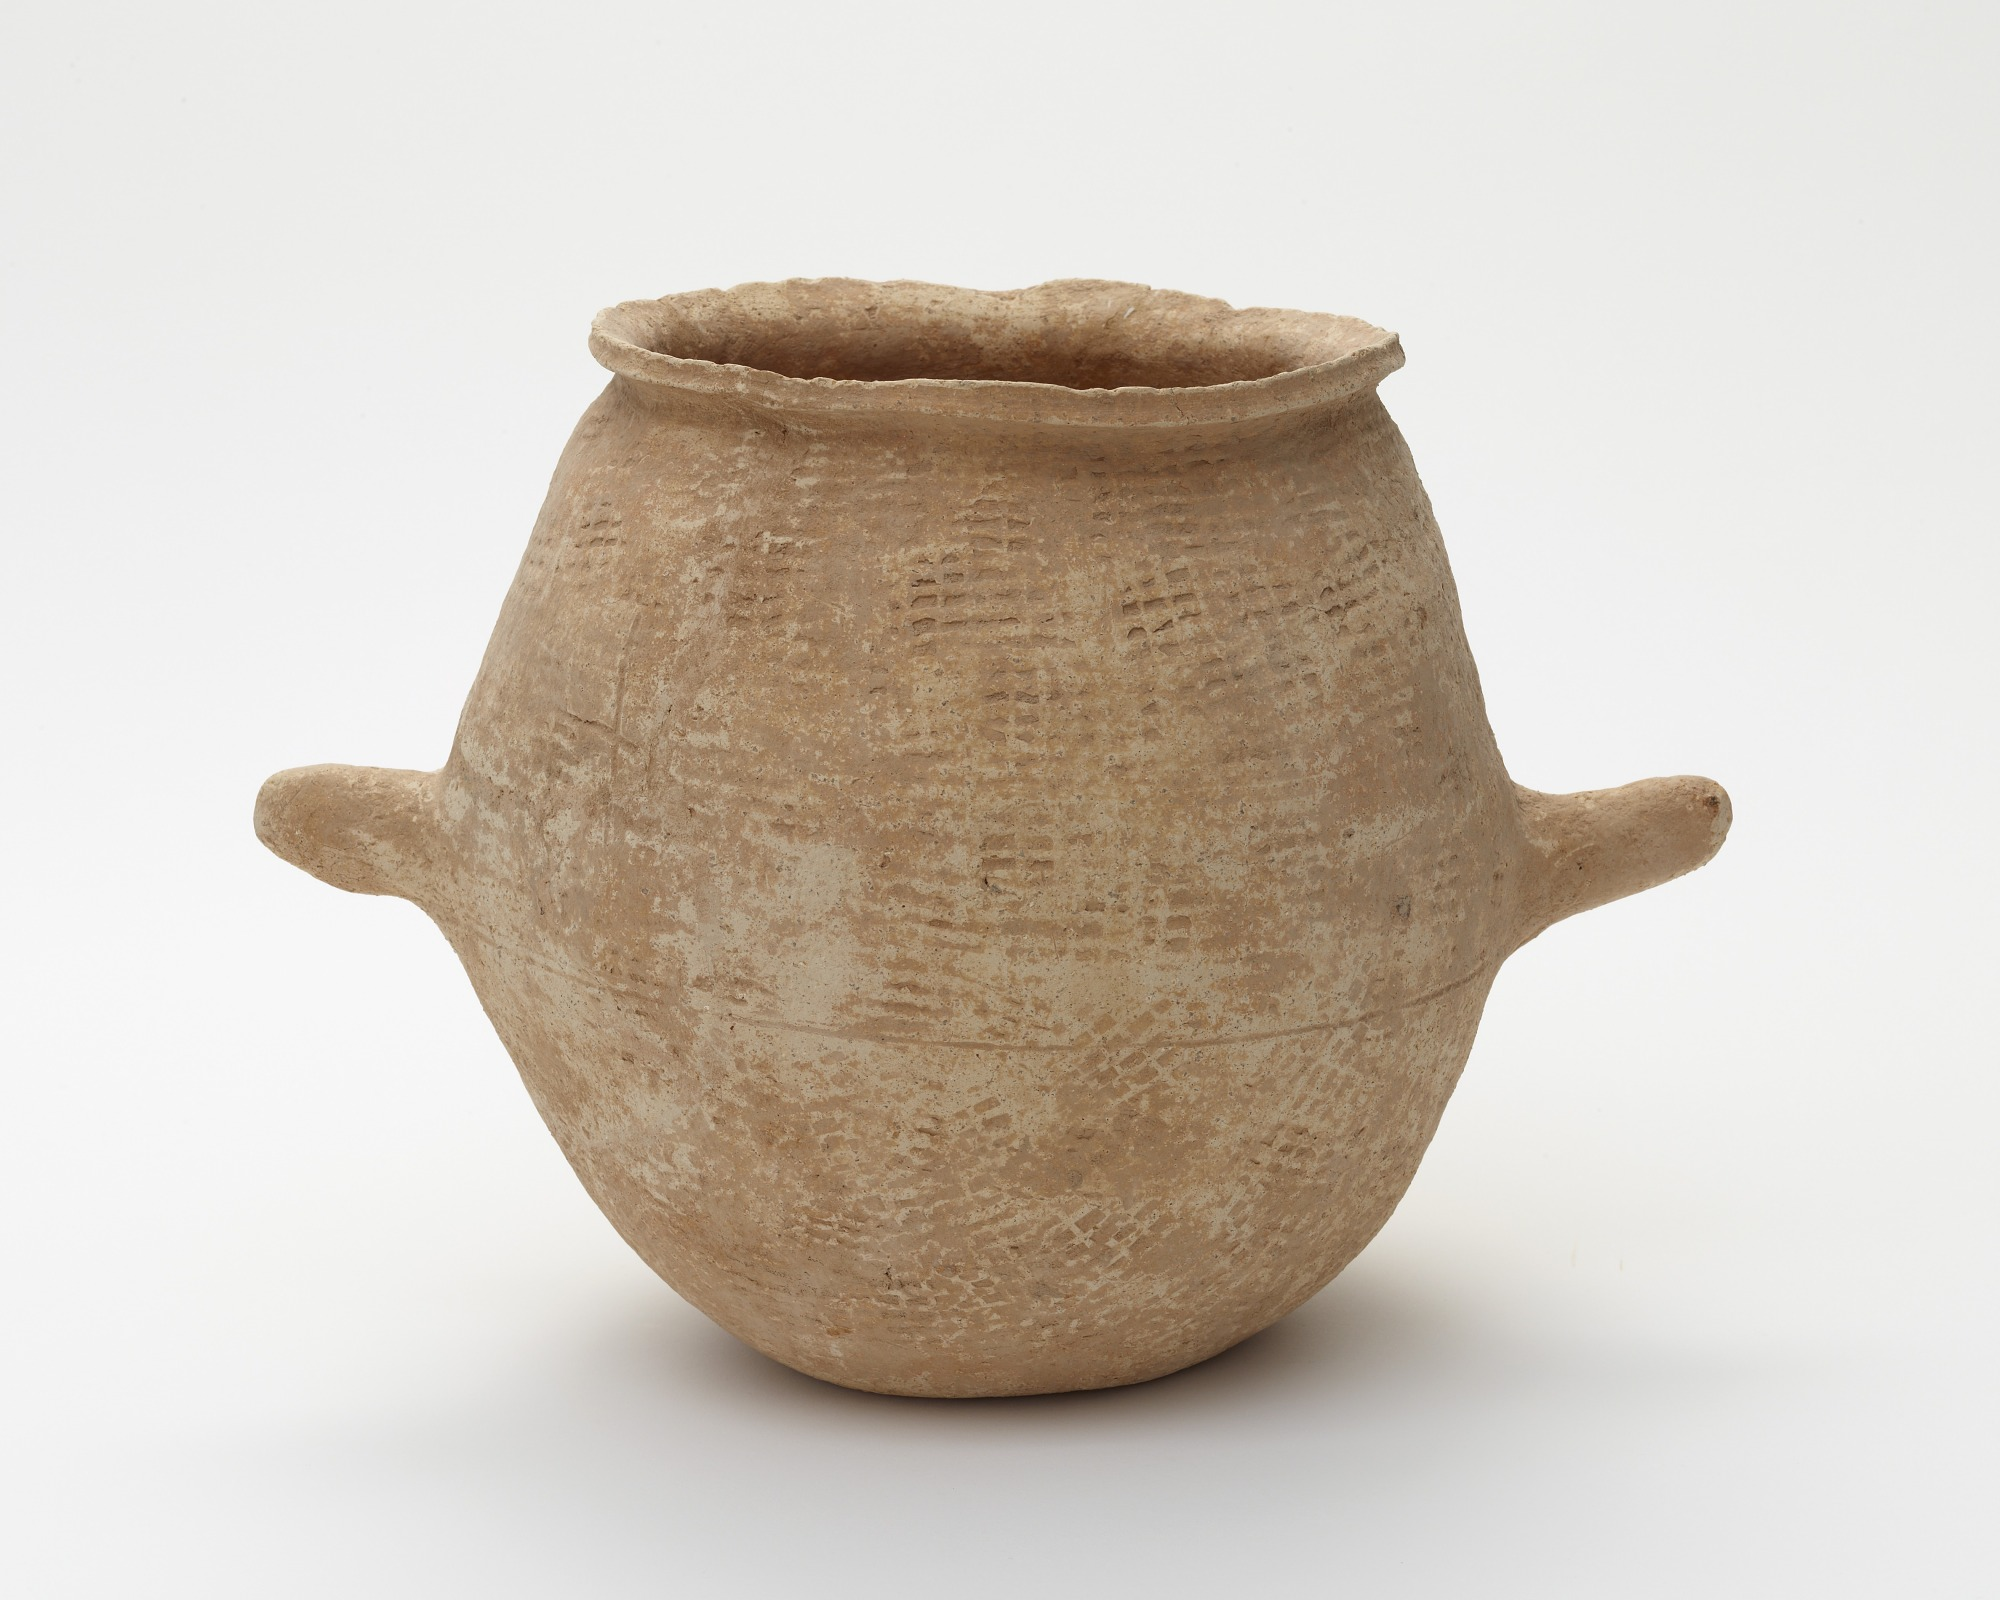 Cooking pot with two handles, profile